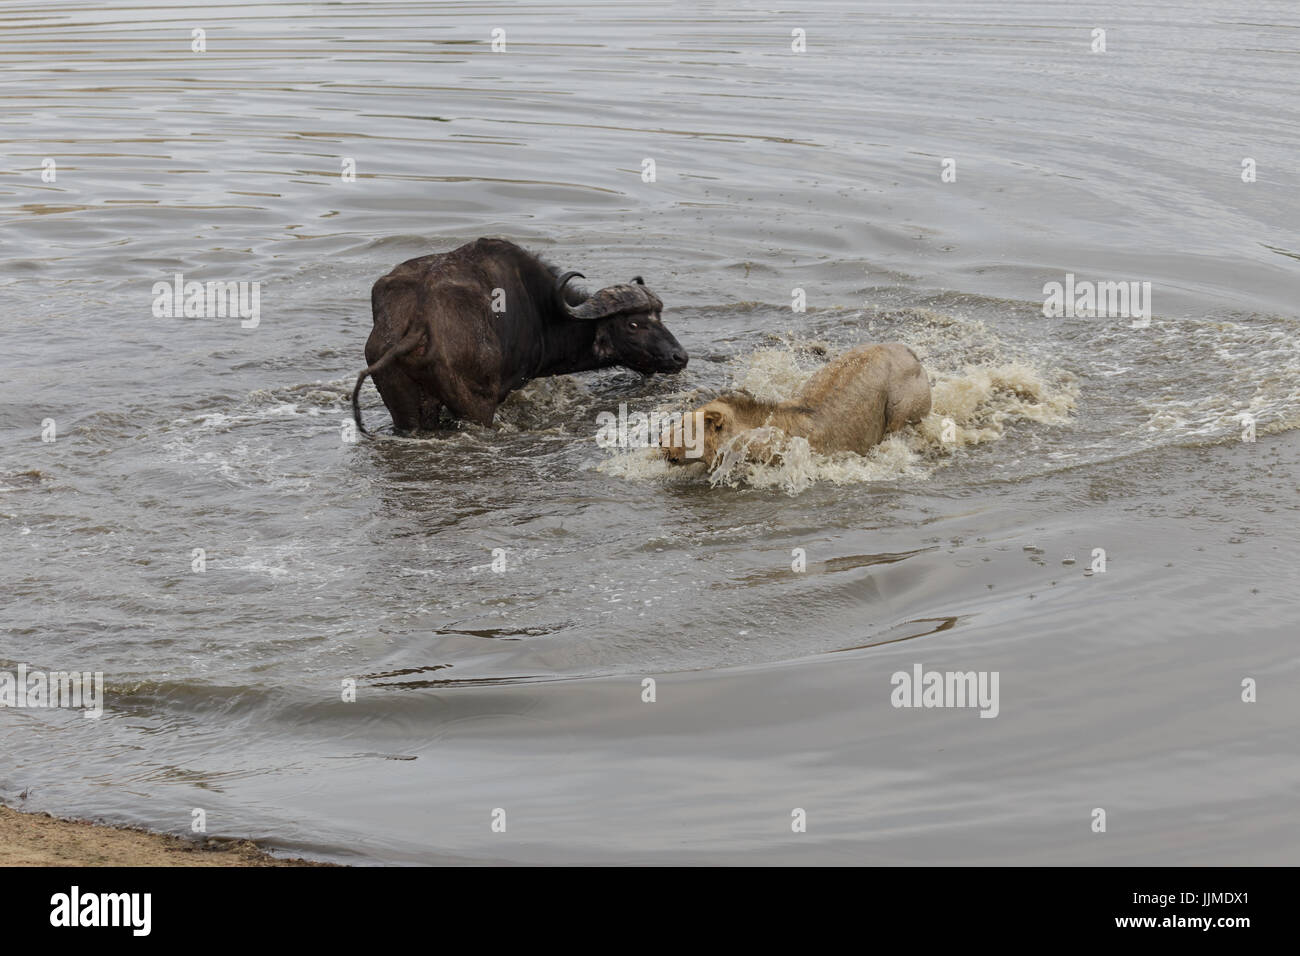 A Water Buffalo S Desperate Attempt To Fight Off A Pride Of Ravenous Stock Photo Alamy Please find below many ways to say desperate attempt in different languages. https www alamy com stock photo a water buffalos desperate attempt to fight off a pride of ravenous 149196713 html